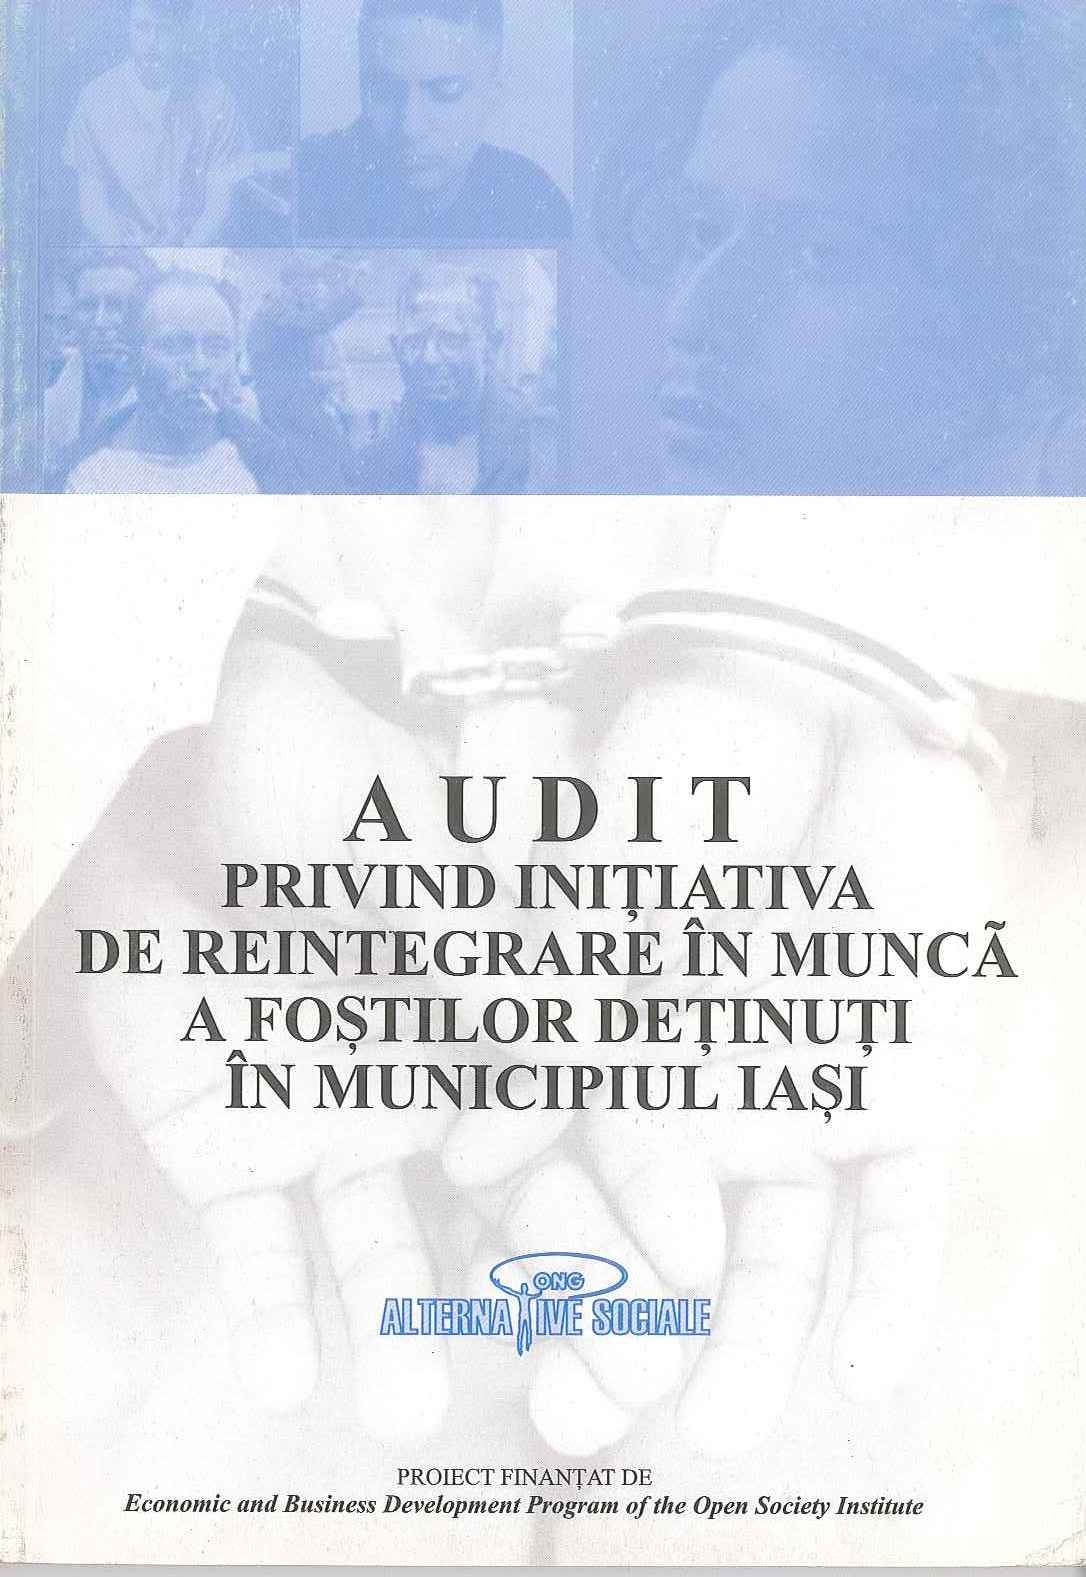 Audit privind integrarea detinutilor